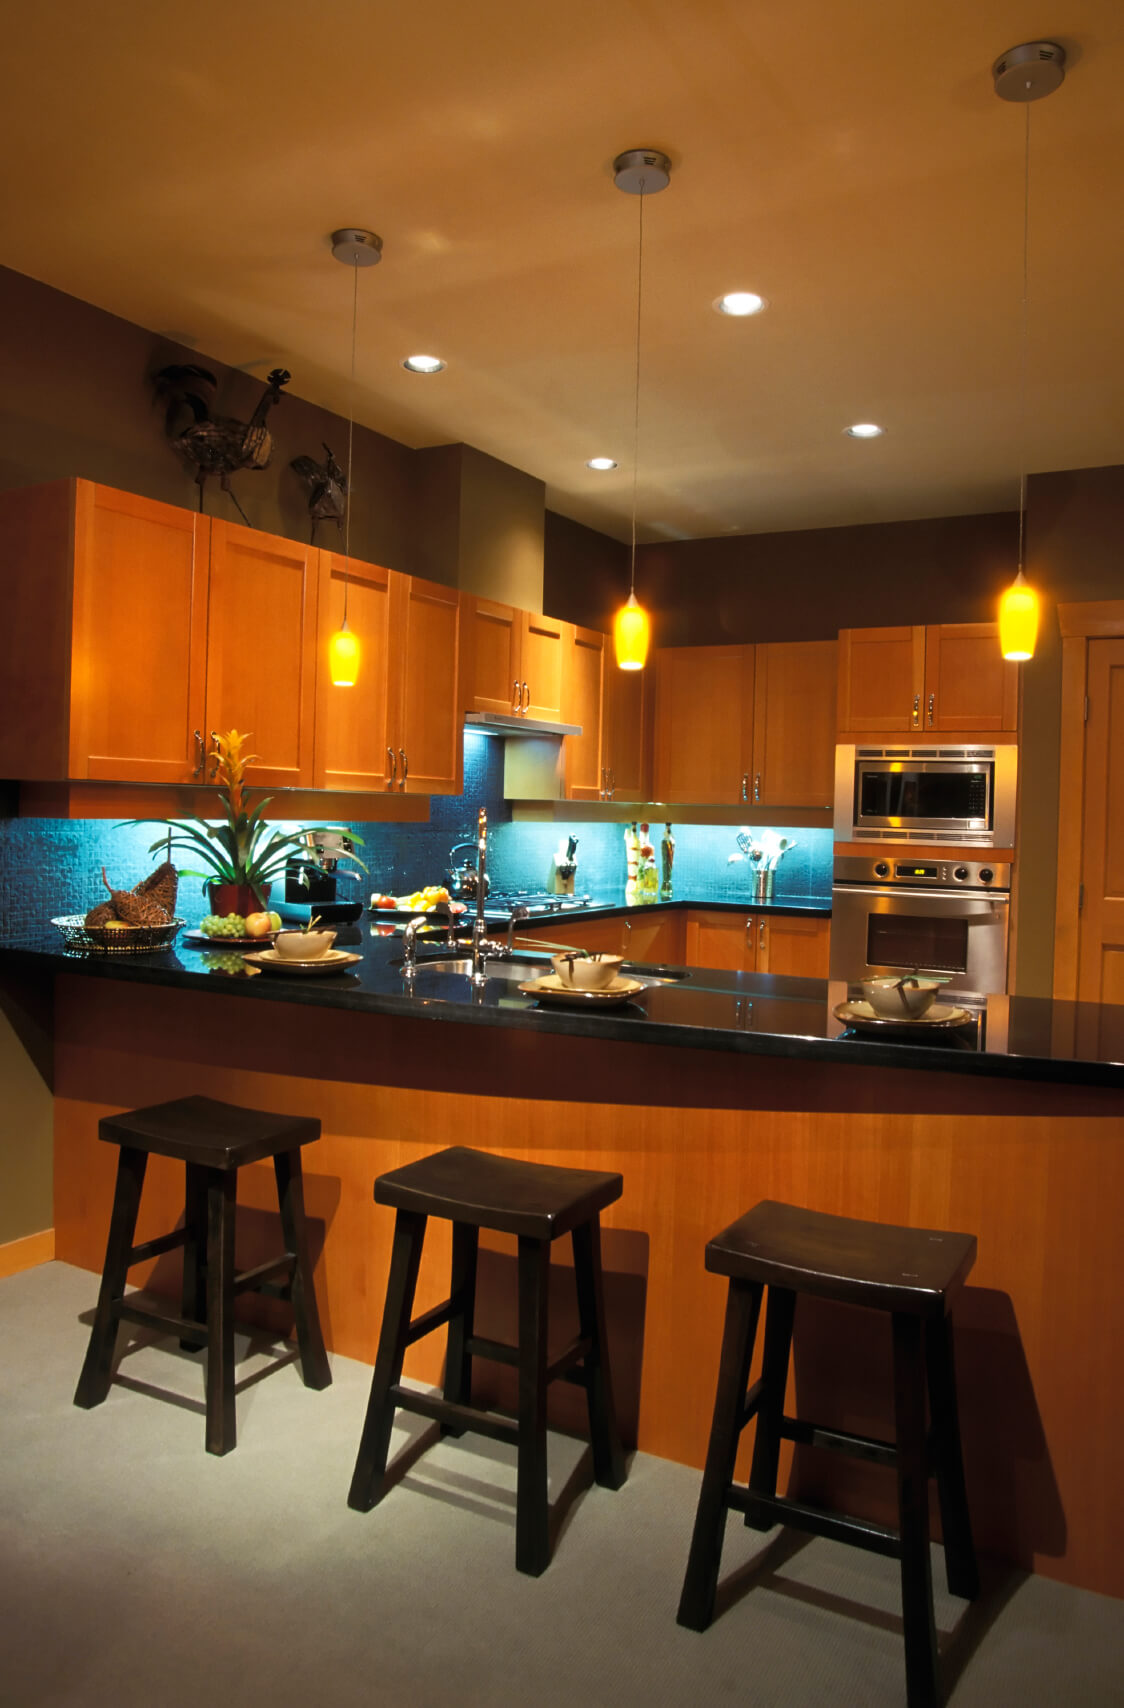 Kitchen Backsplash Lighting 5 striking kitchen lighting combinations |